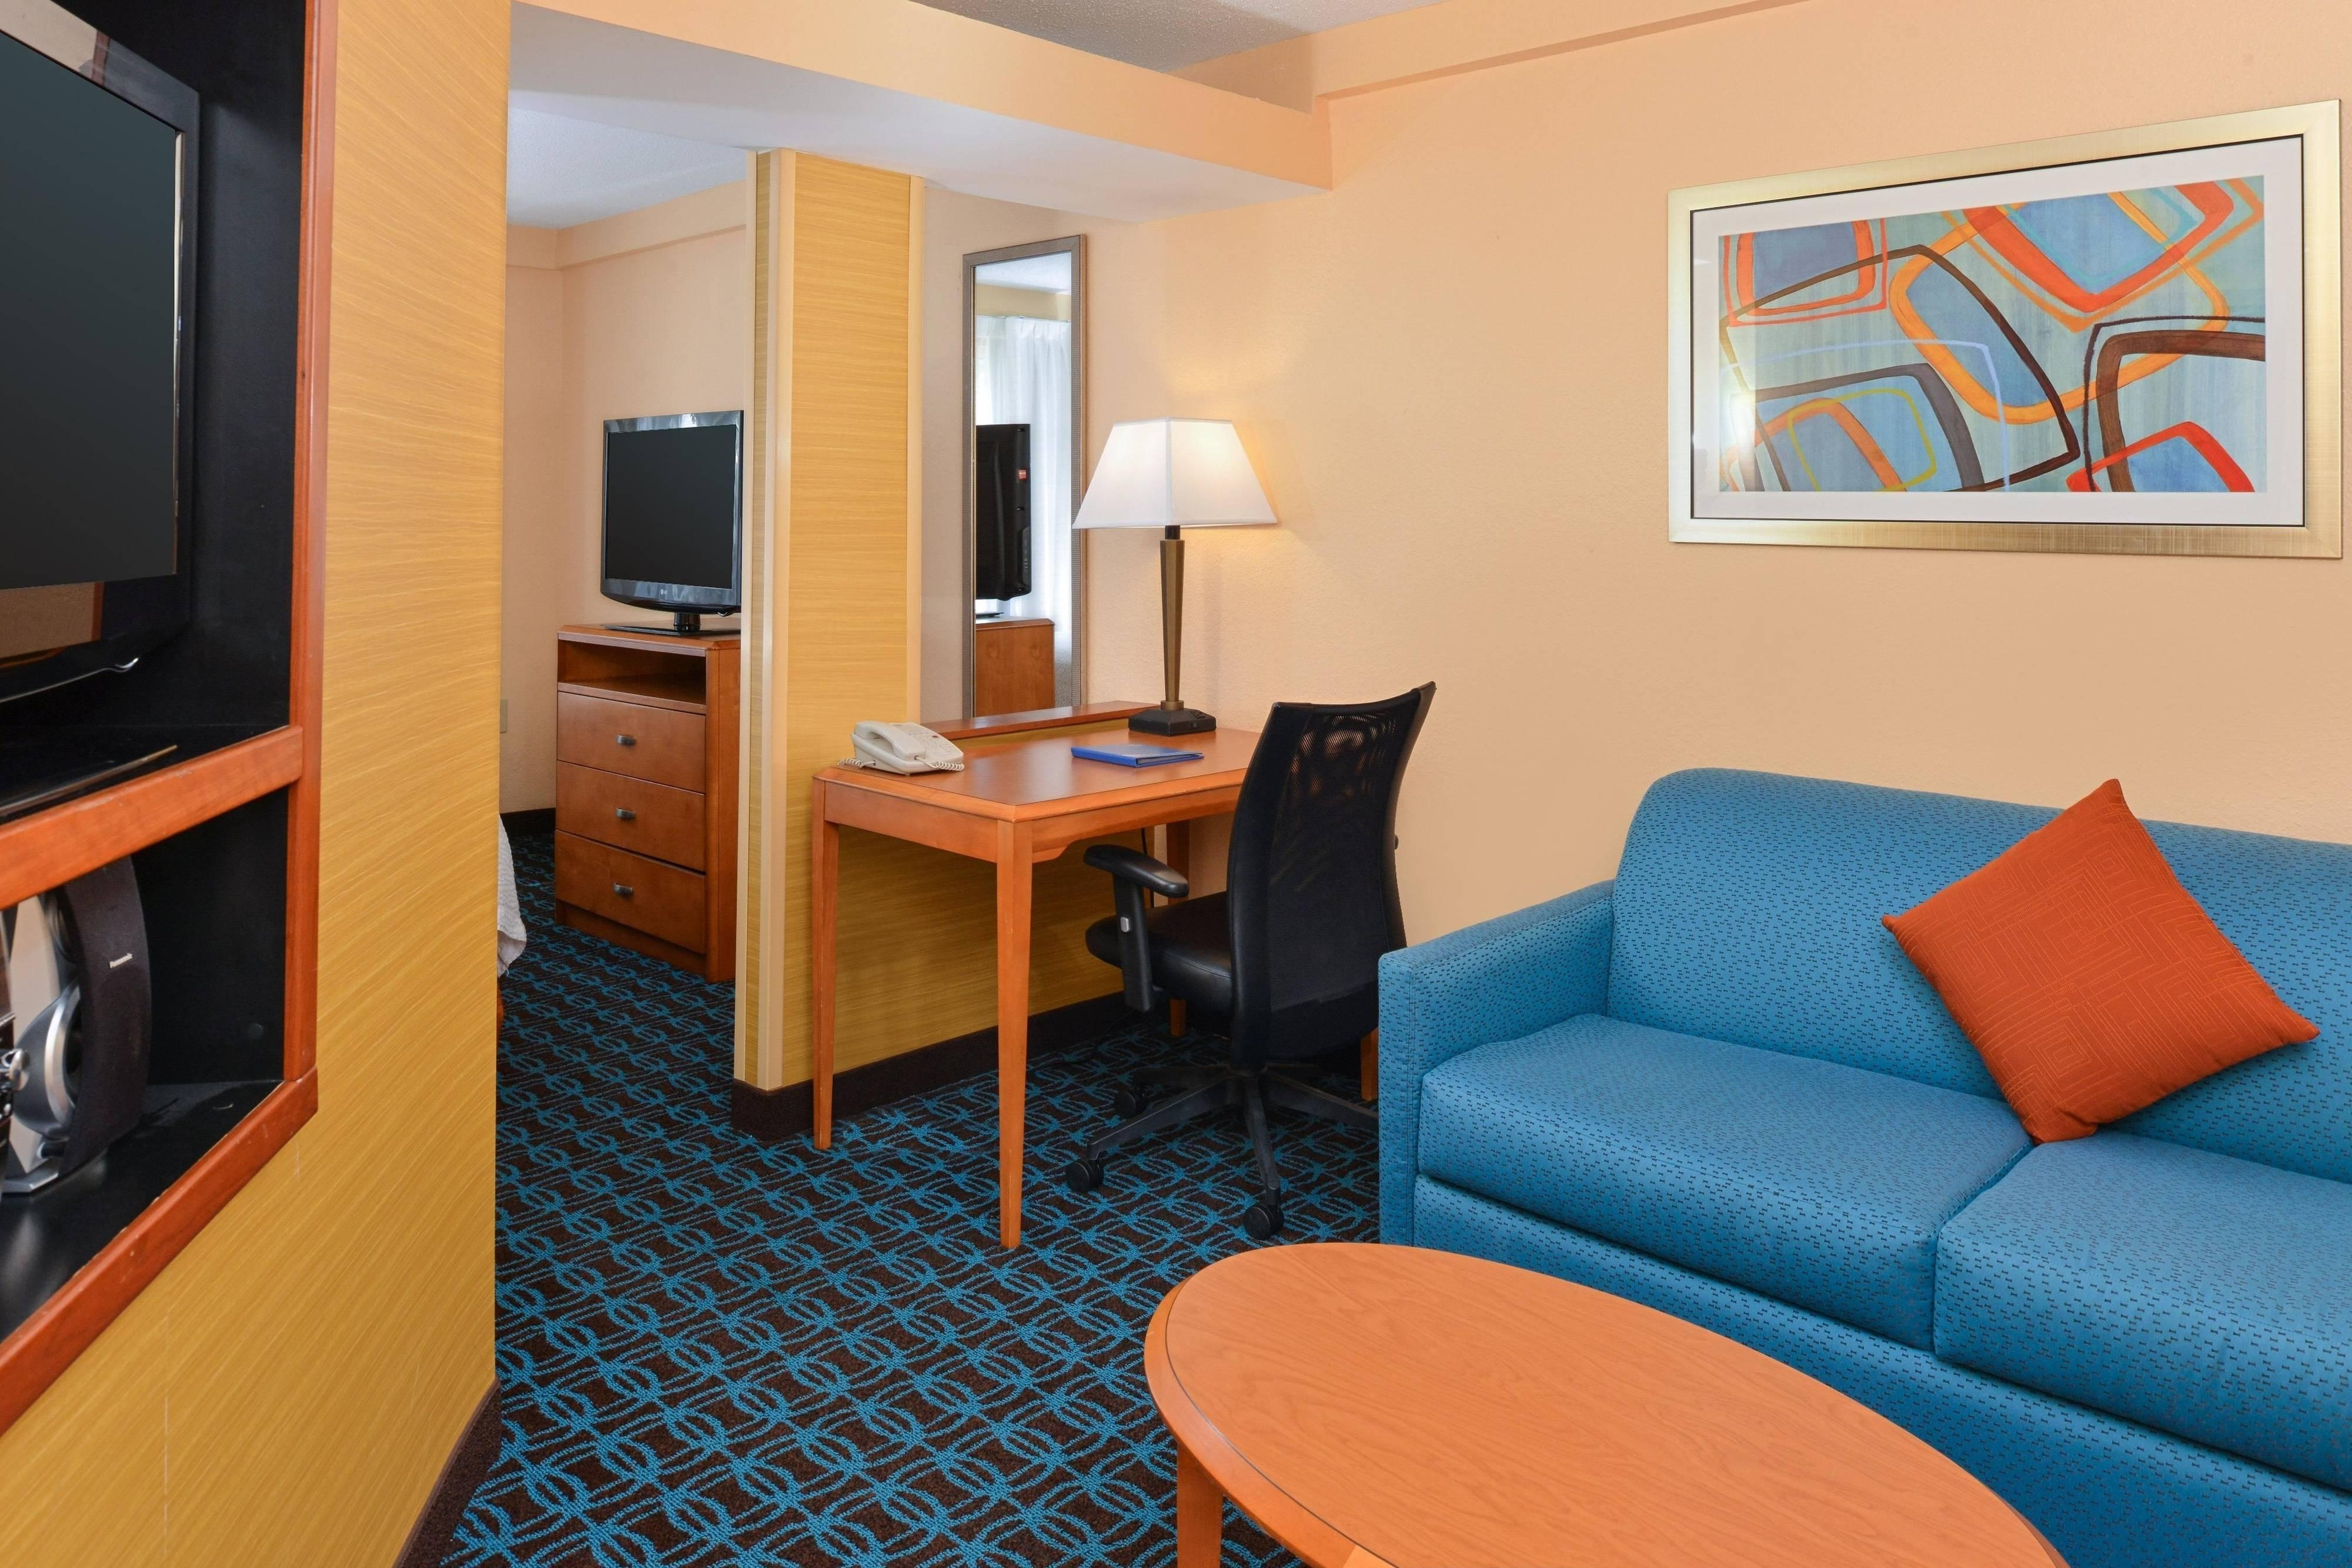 Fairfield Inn & Suites Georgetown Guestroom